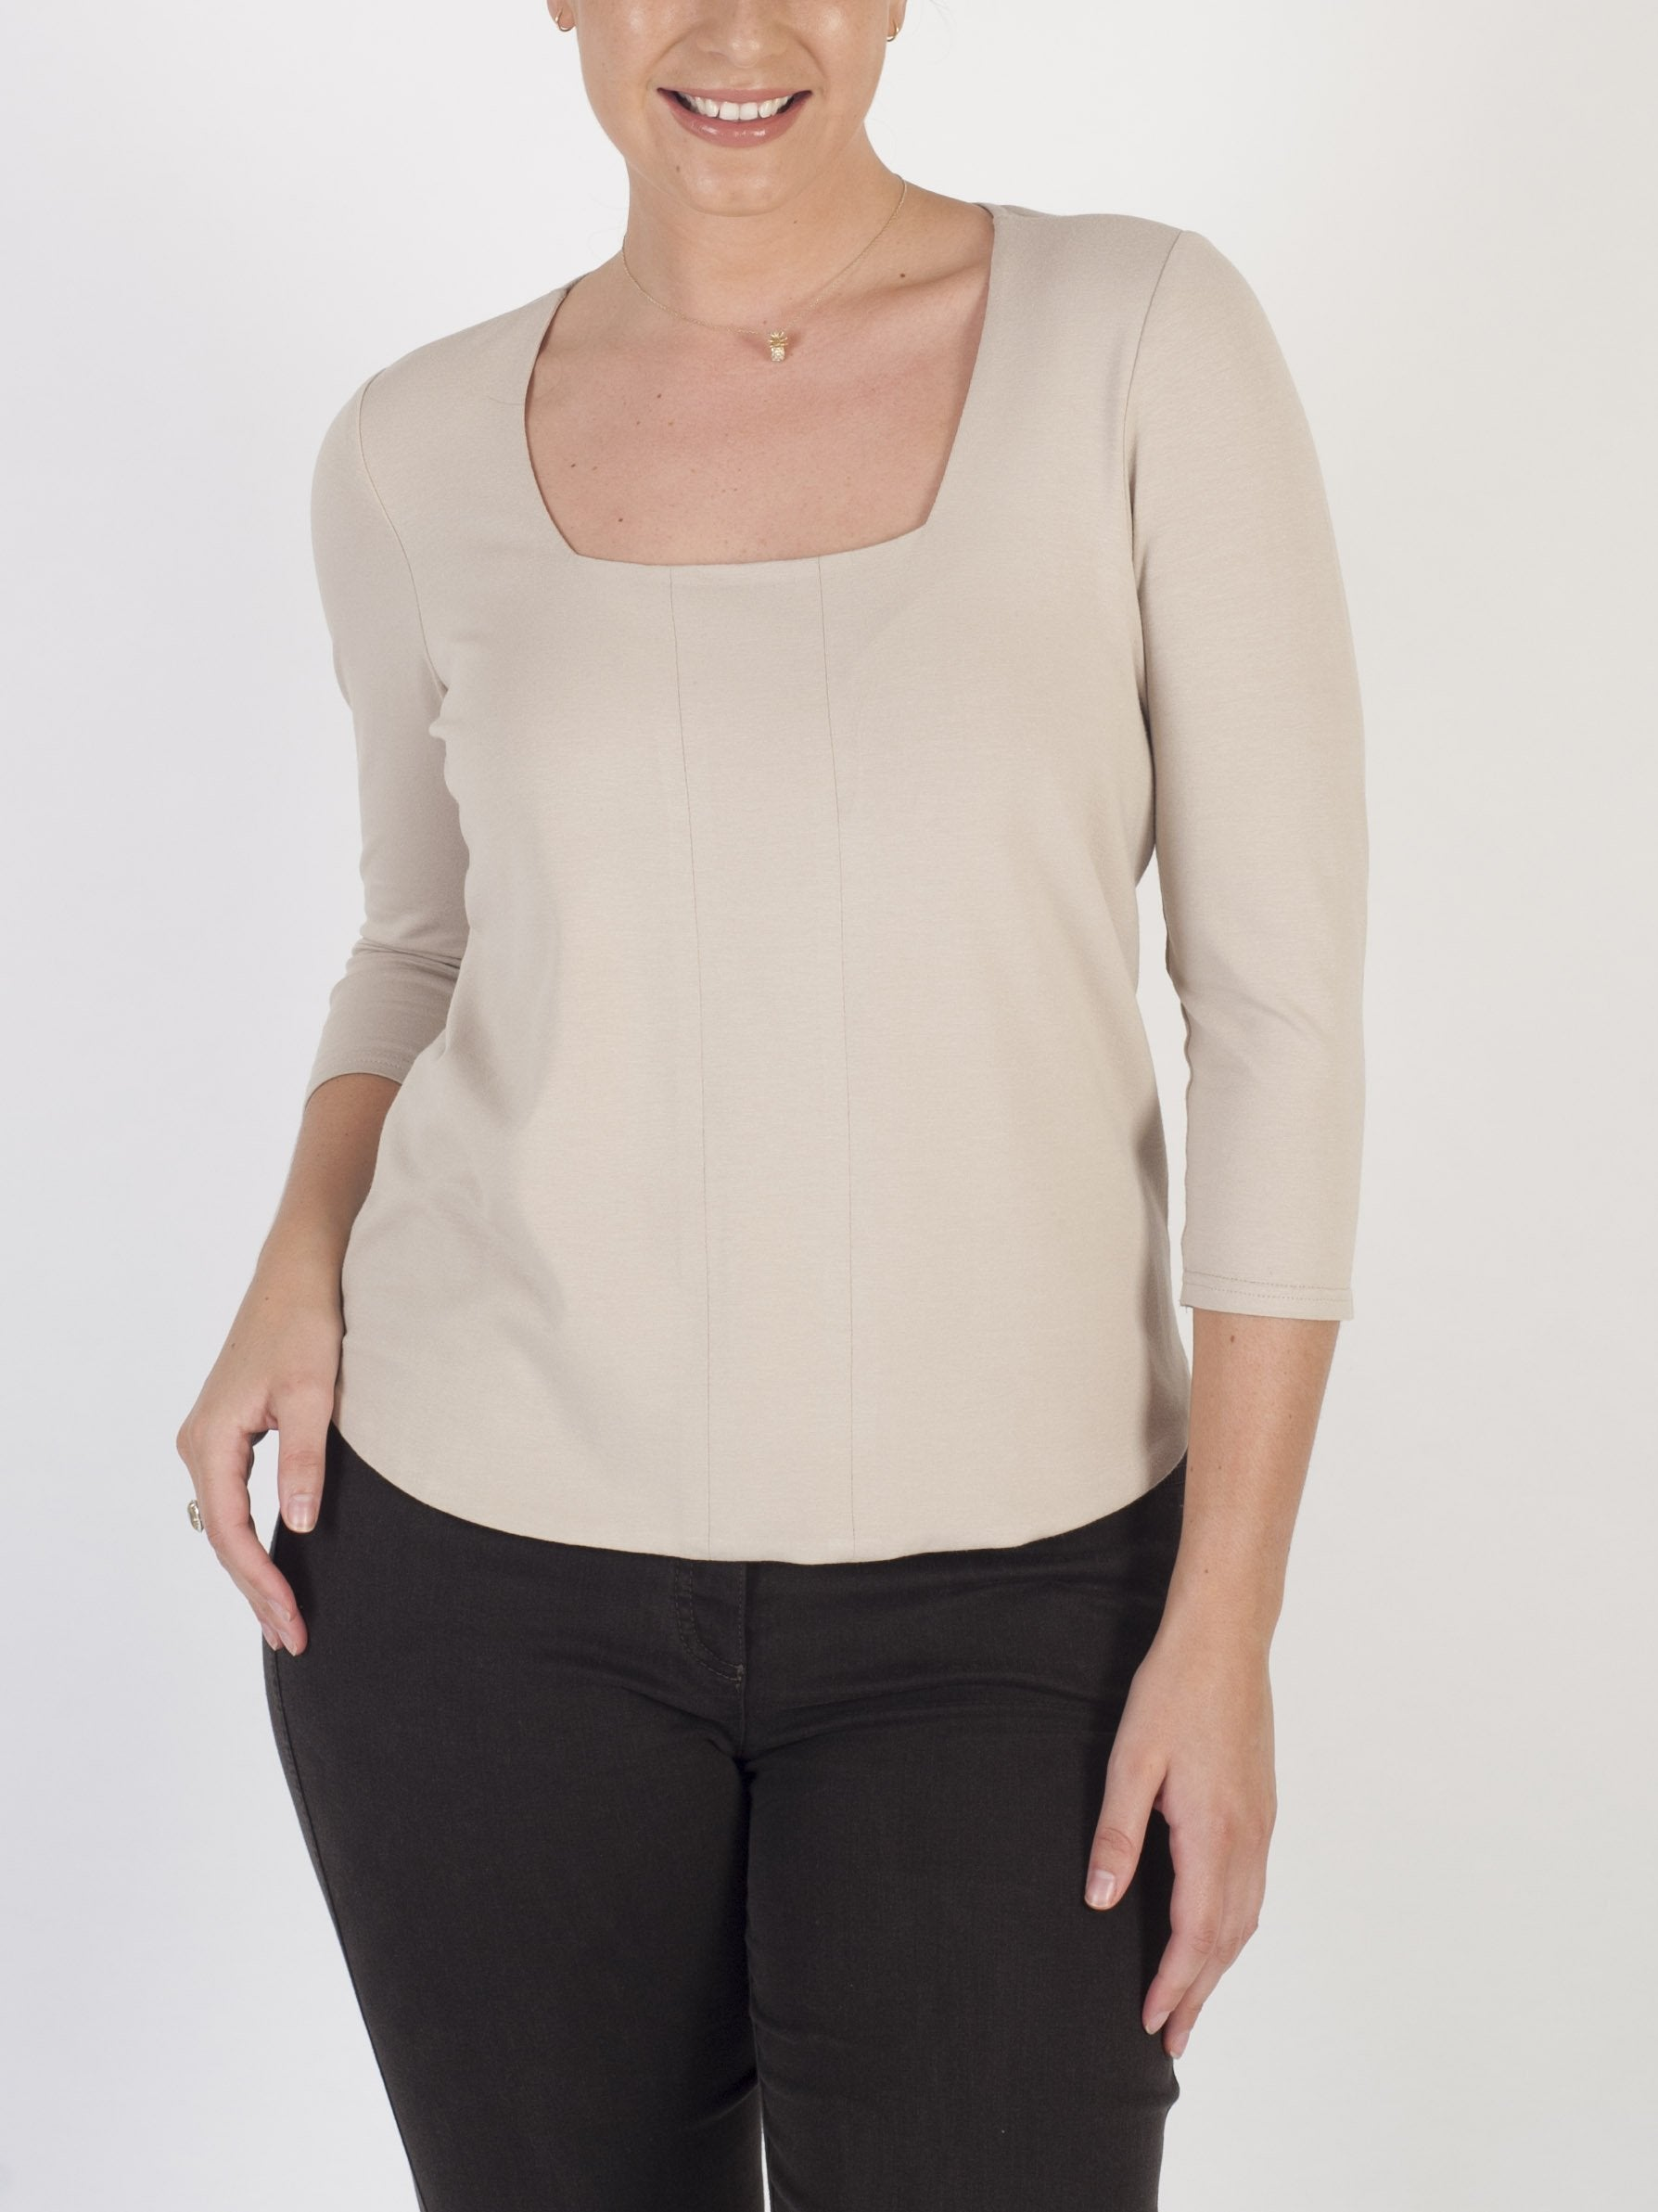 Chesca Direct Franchesca Beige Square Neck Jersey Top